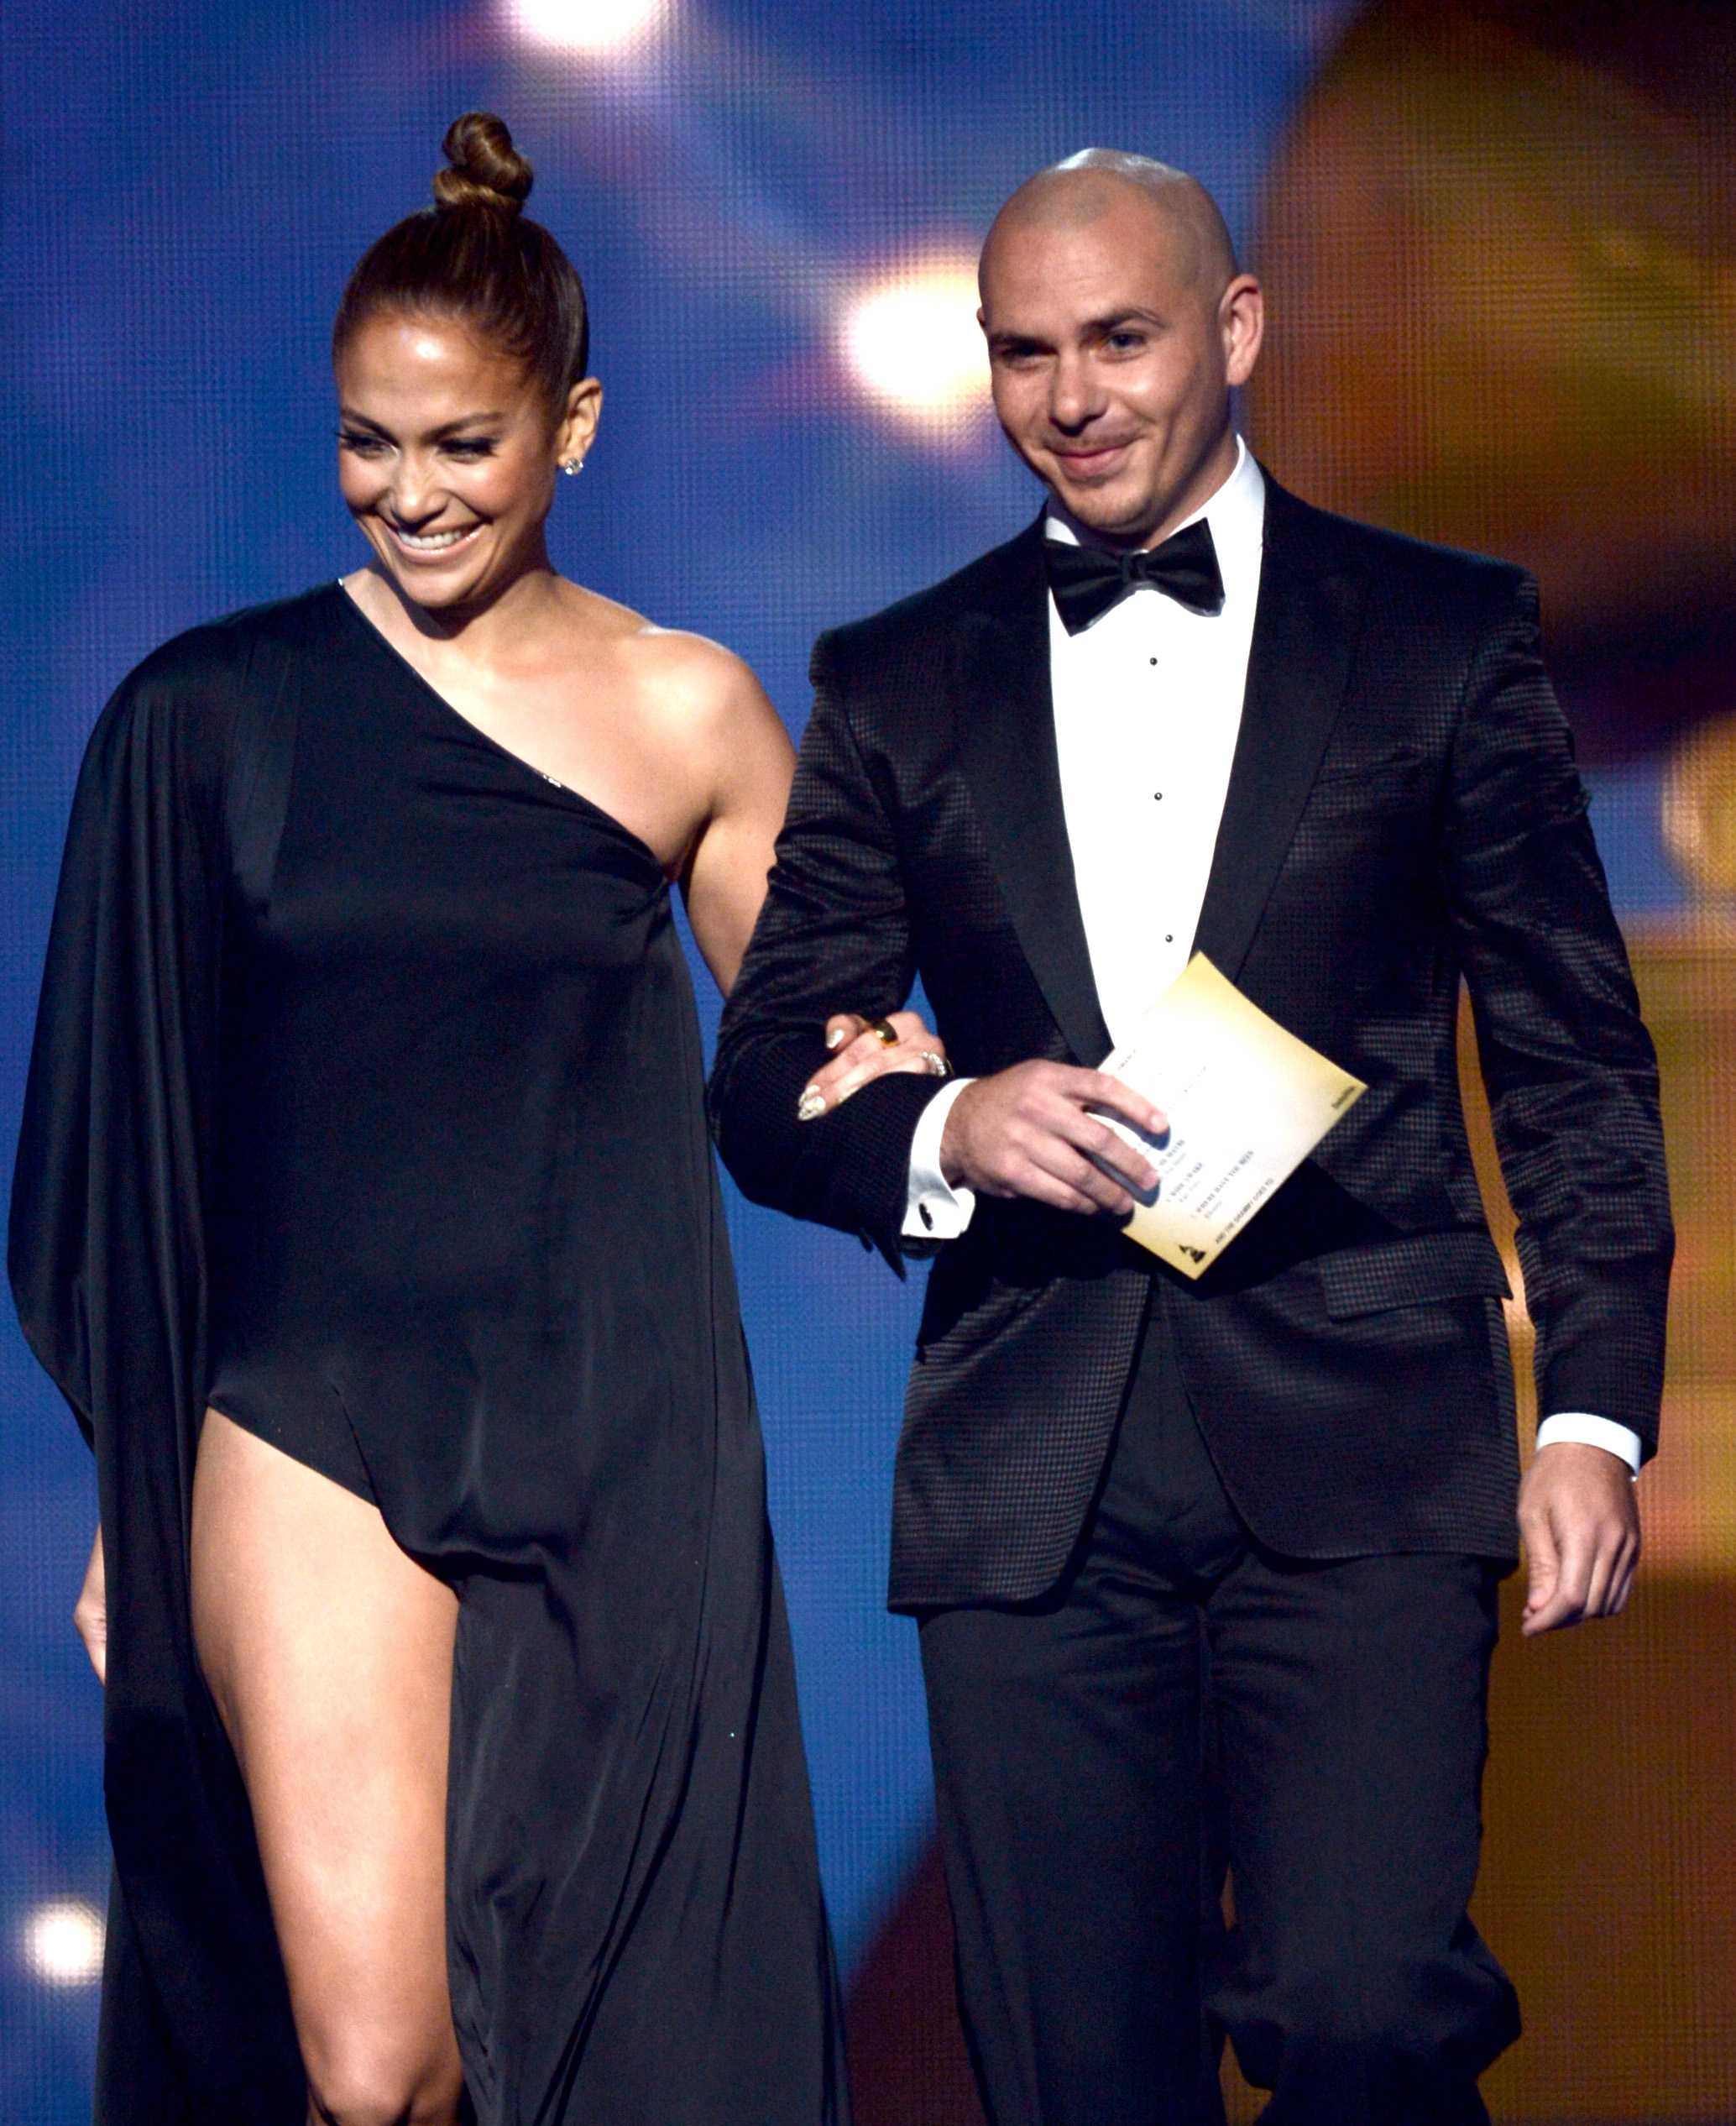 Jennifer Lopez and Pitbull stepped onto the stage